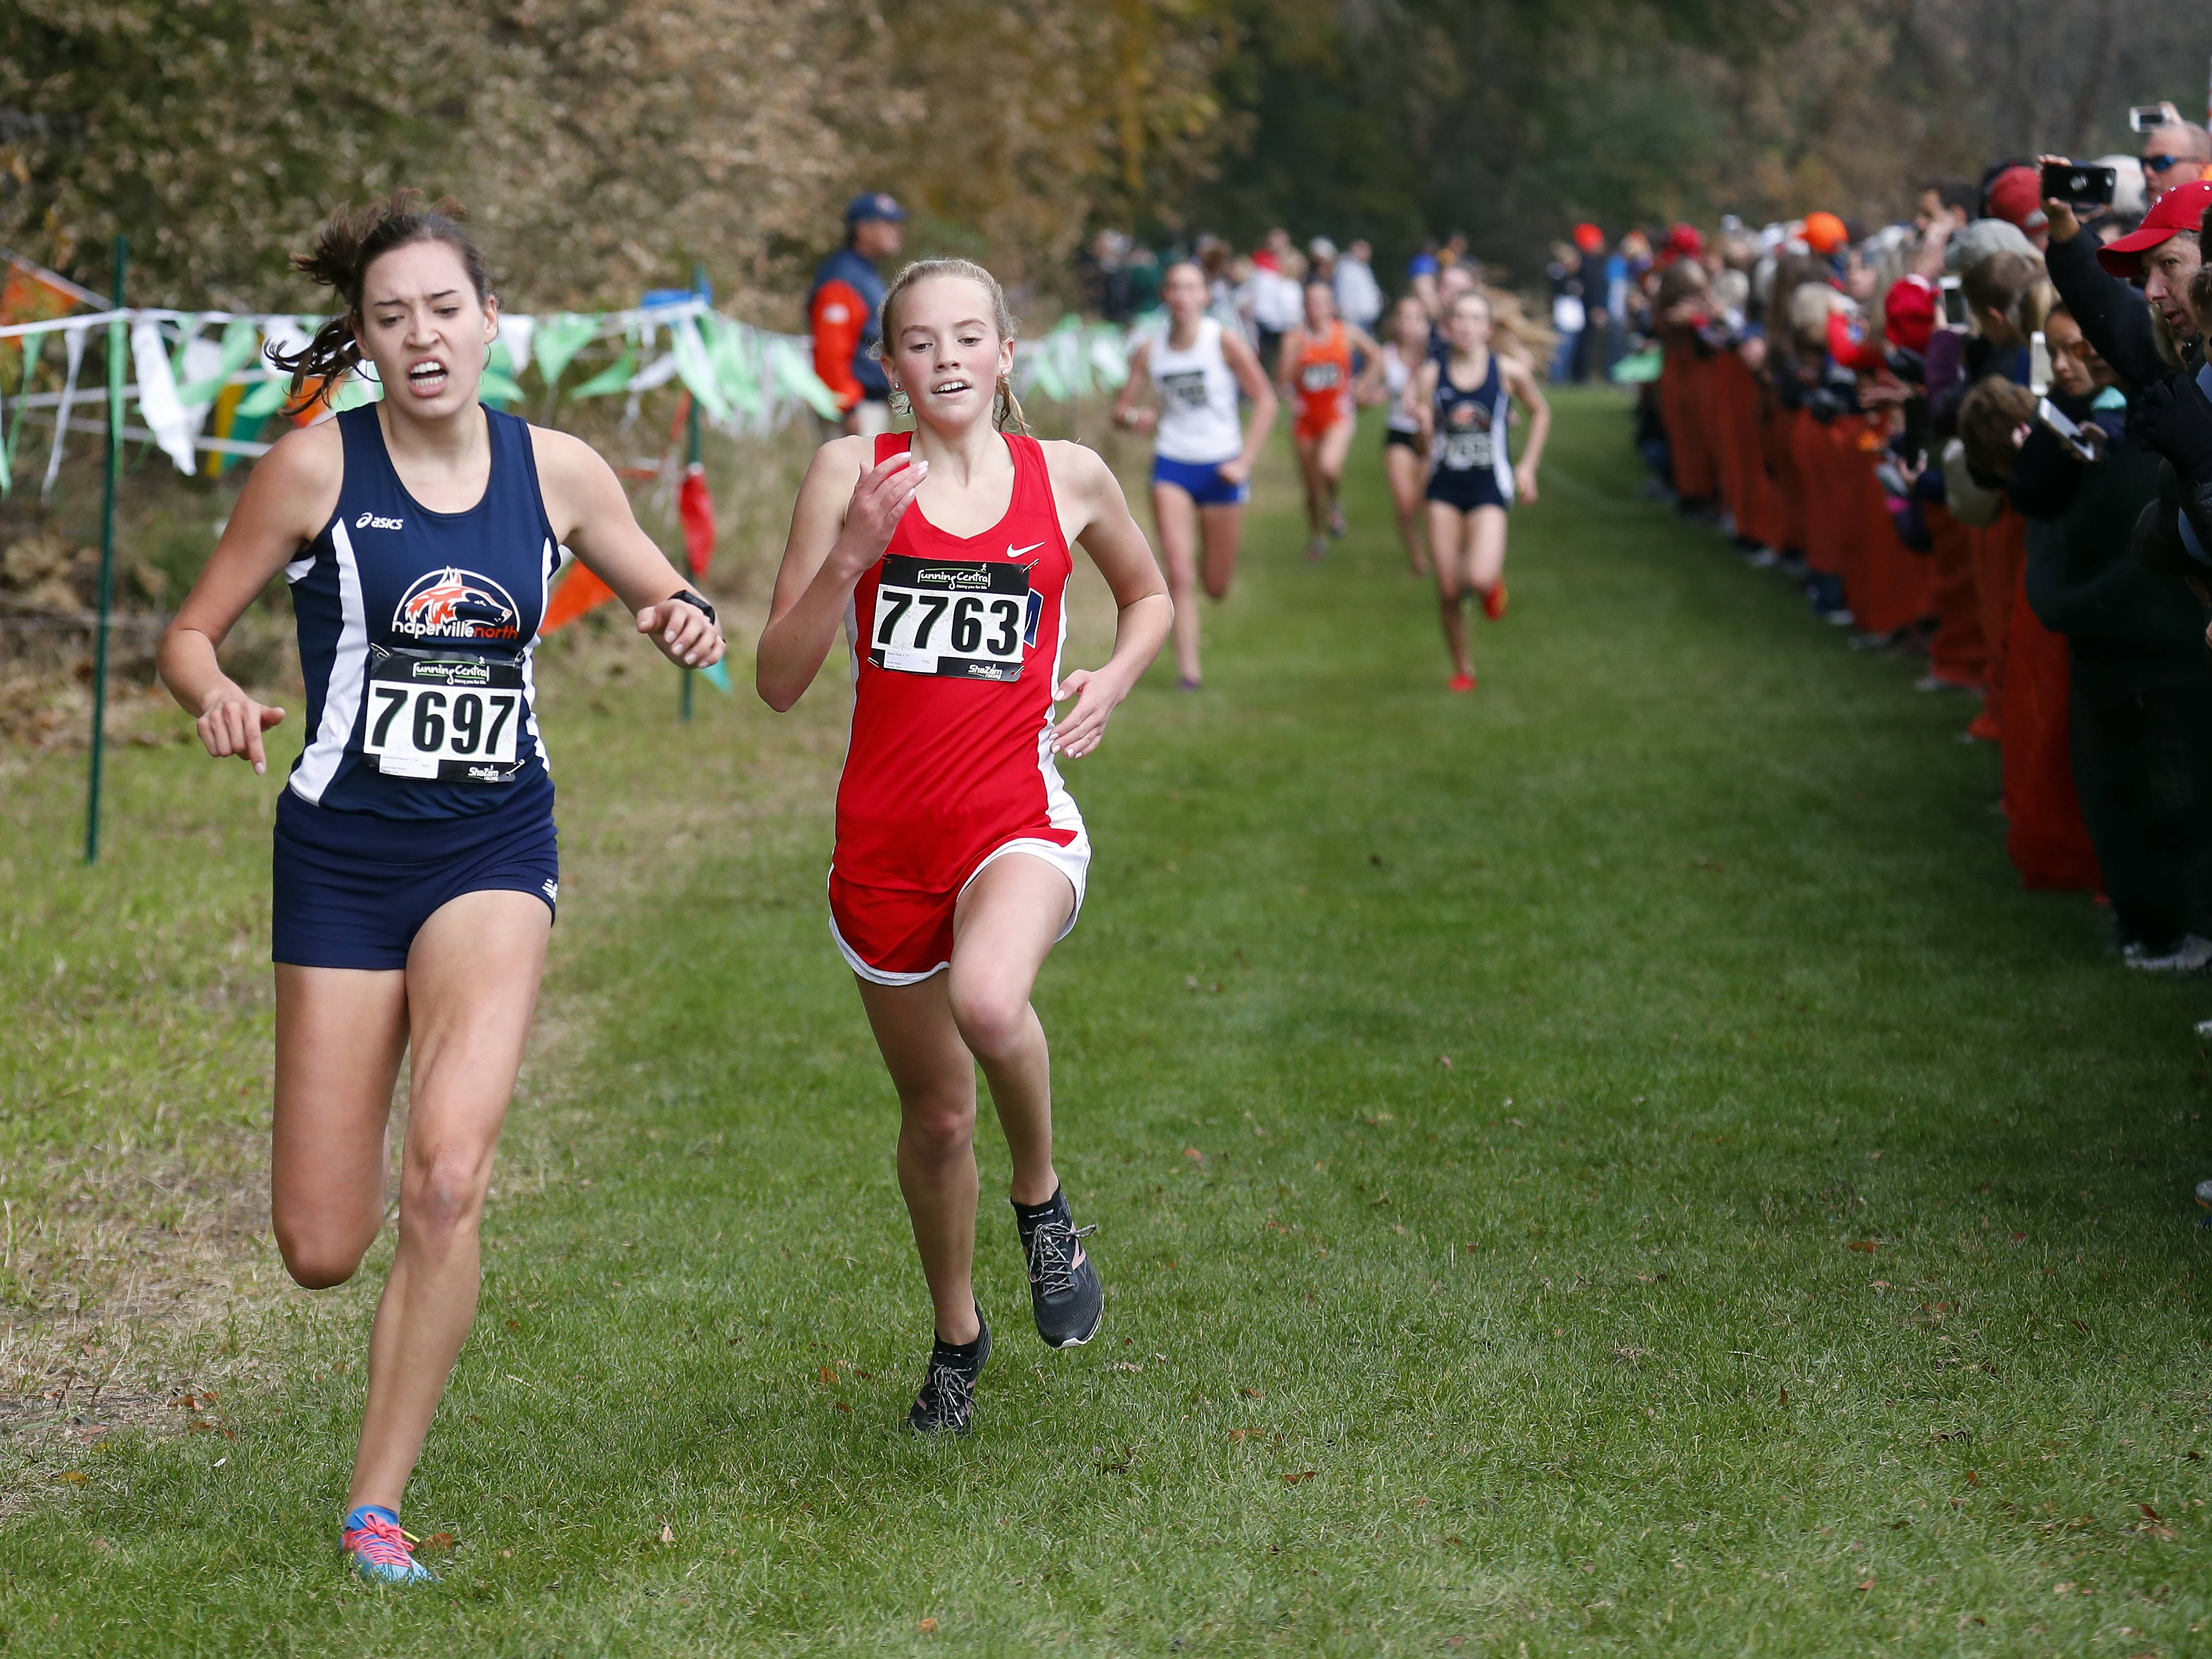 Campbell Petersen of Naperville North and Naomi Ruff of South Elgin Saturday during the Waubonsie Valley cross country sectional in Aurora.